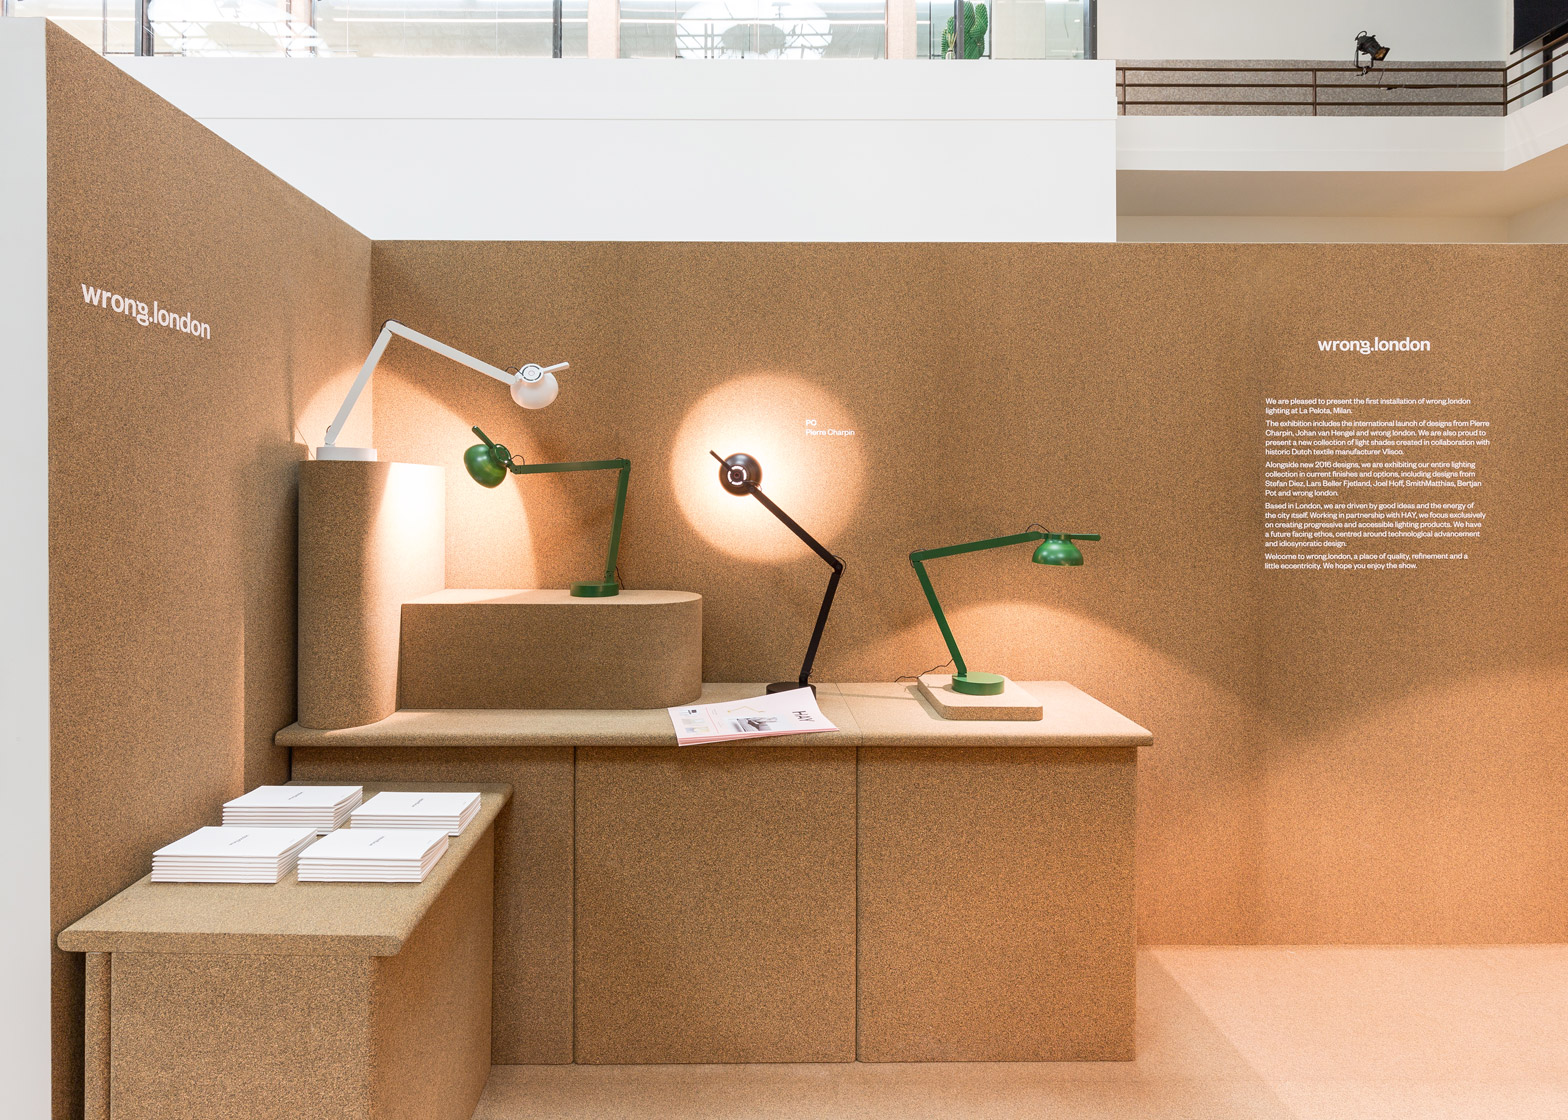 Hay Milan design week 2016 exhibition